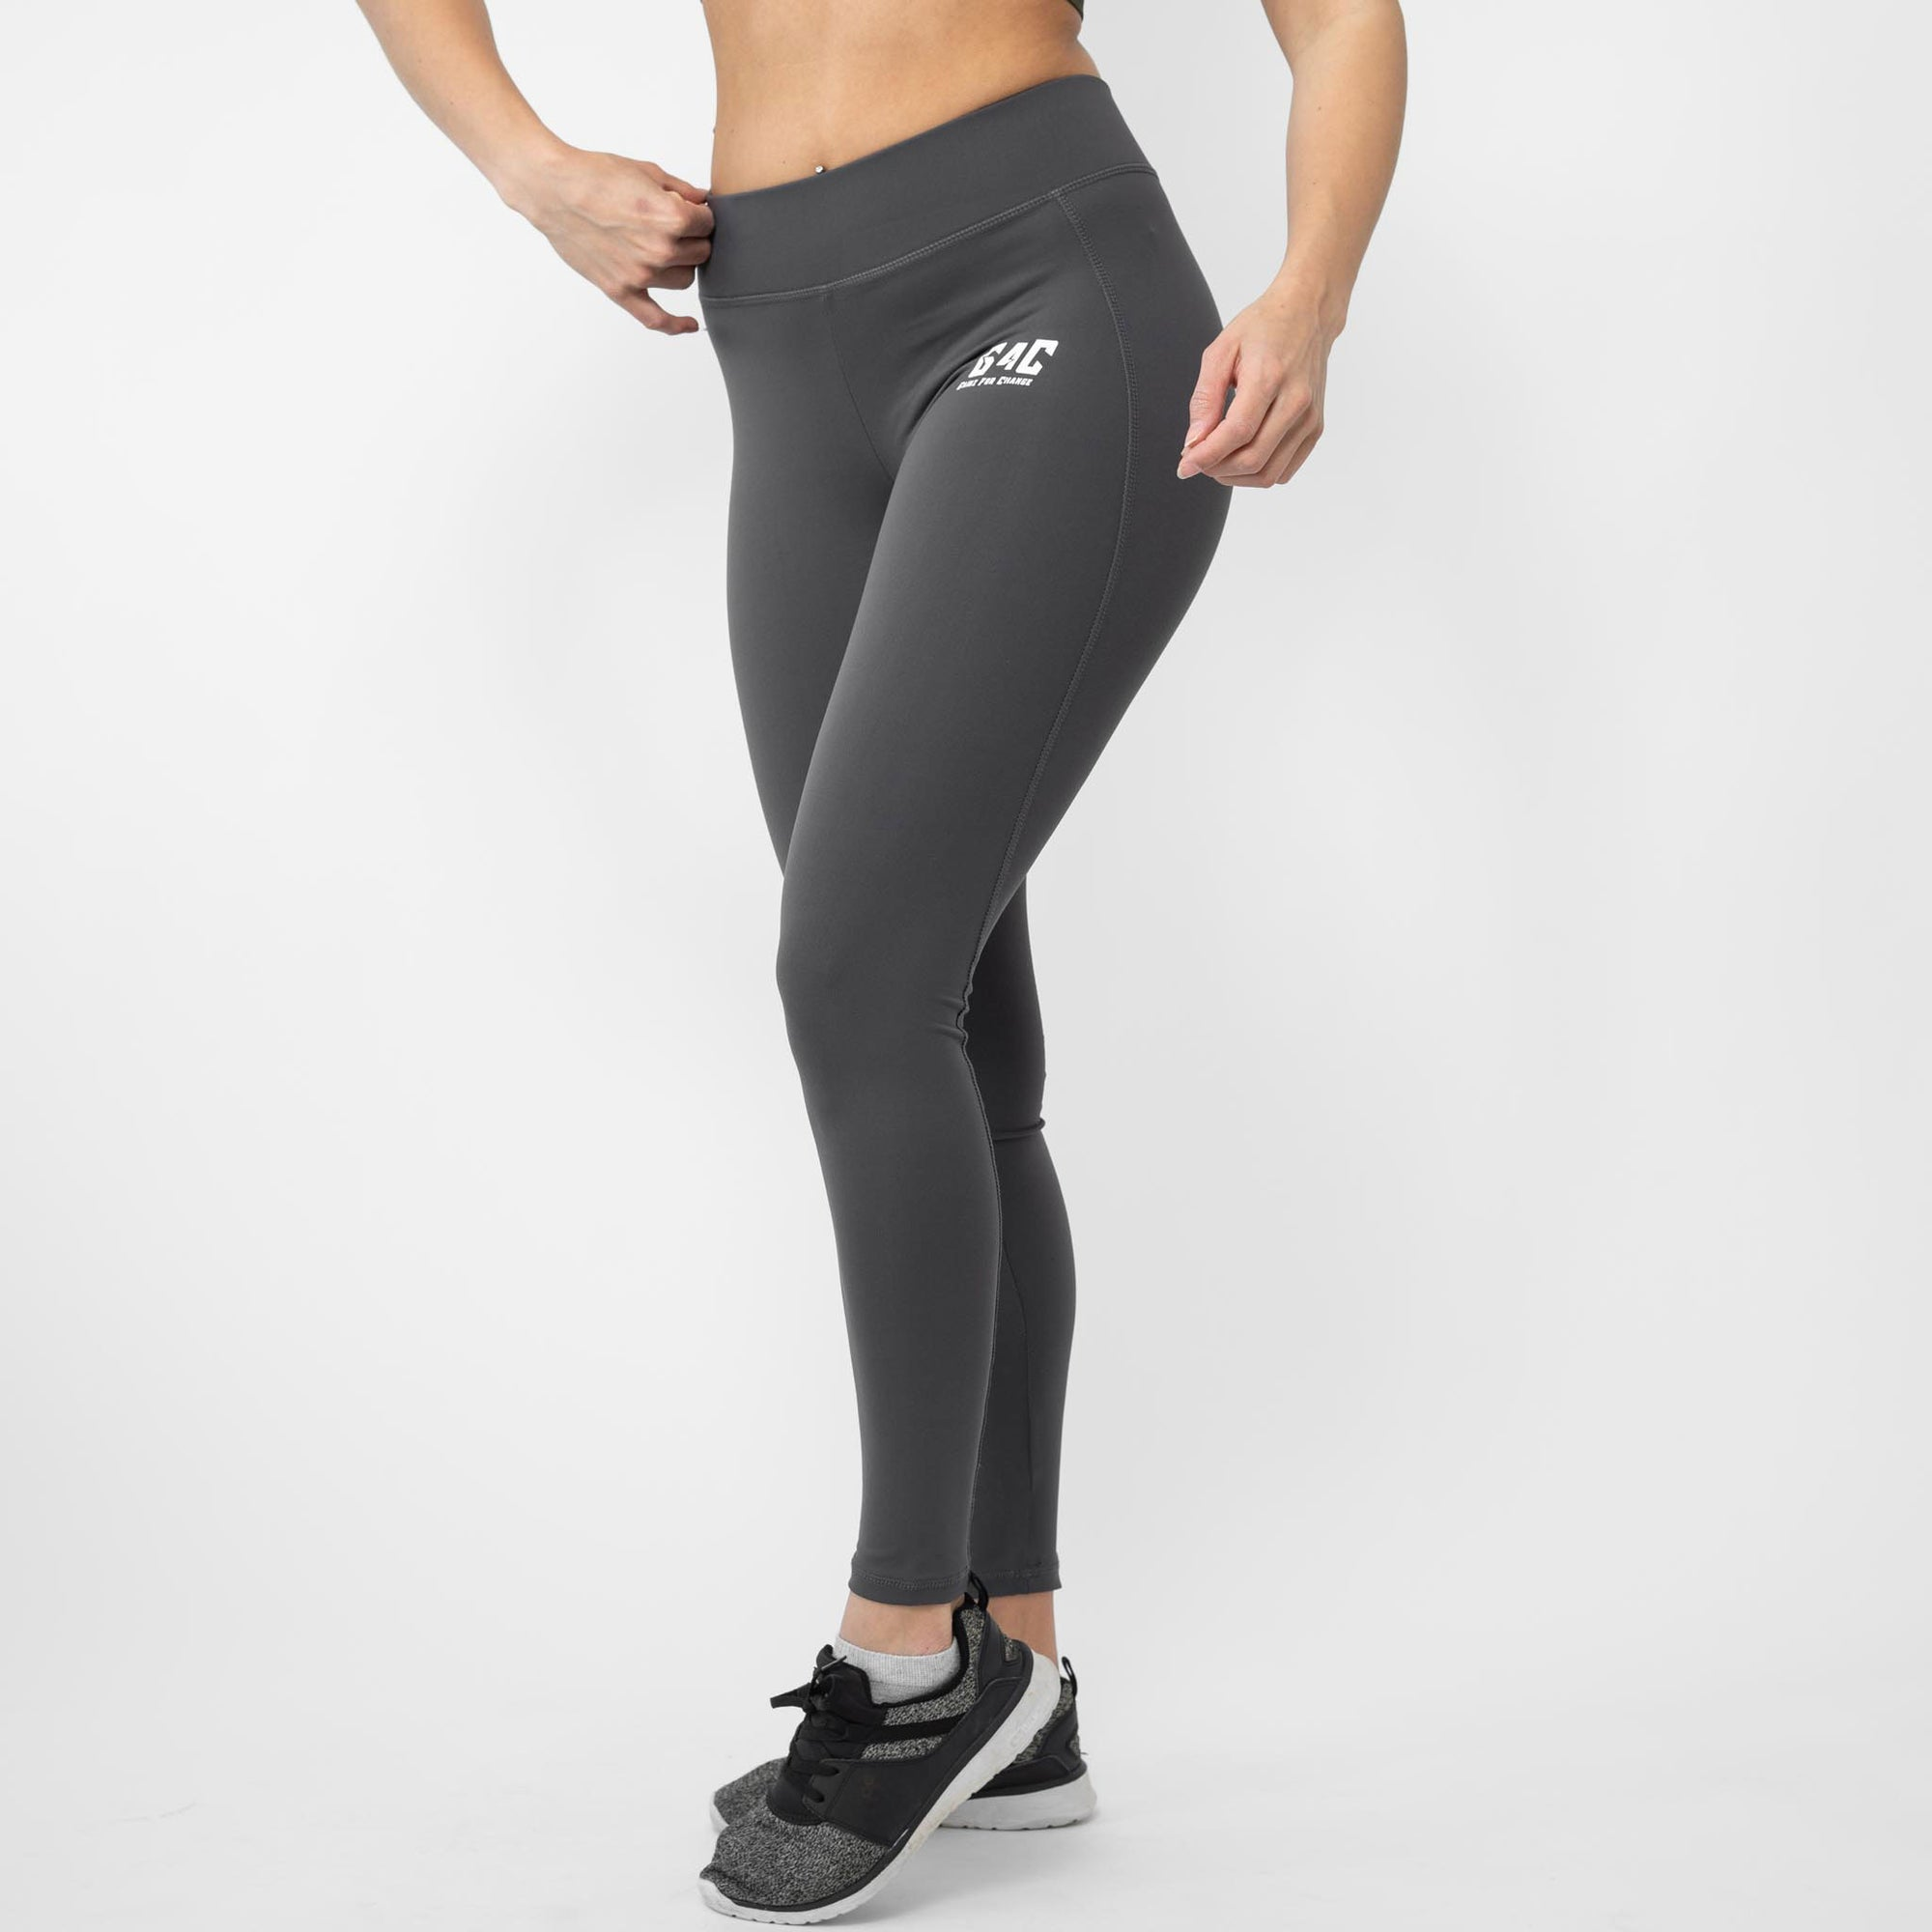 Gainz4Change Highwaist Leggings Athletia charcoal - Gainz4Change